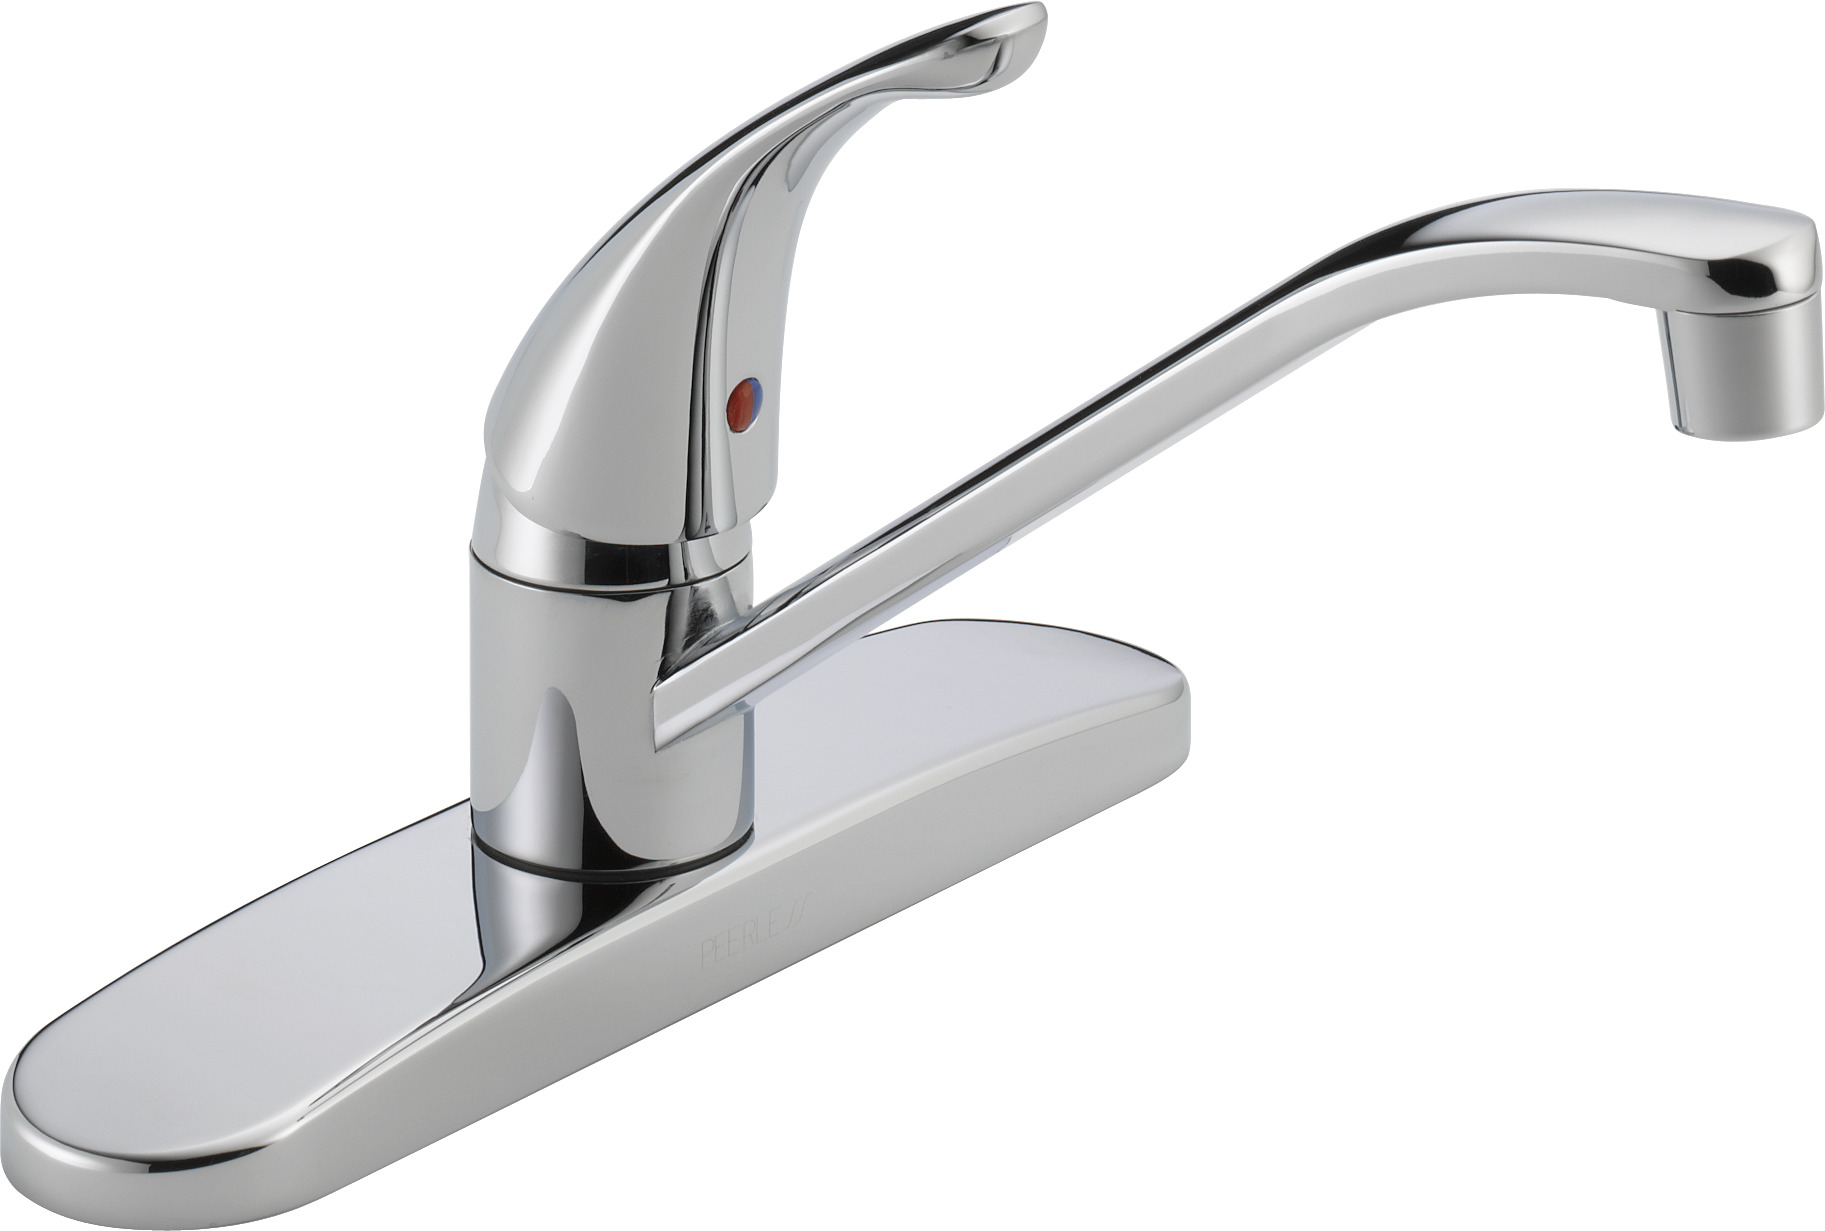 Perfect Peerless Single Handle Kitchen Faucet With Single Lever Control, Chrome